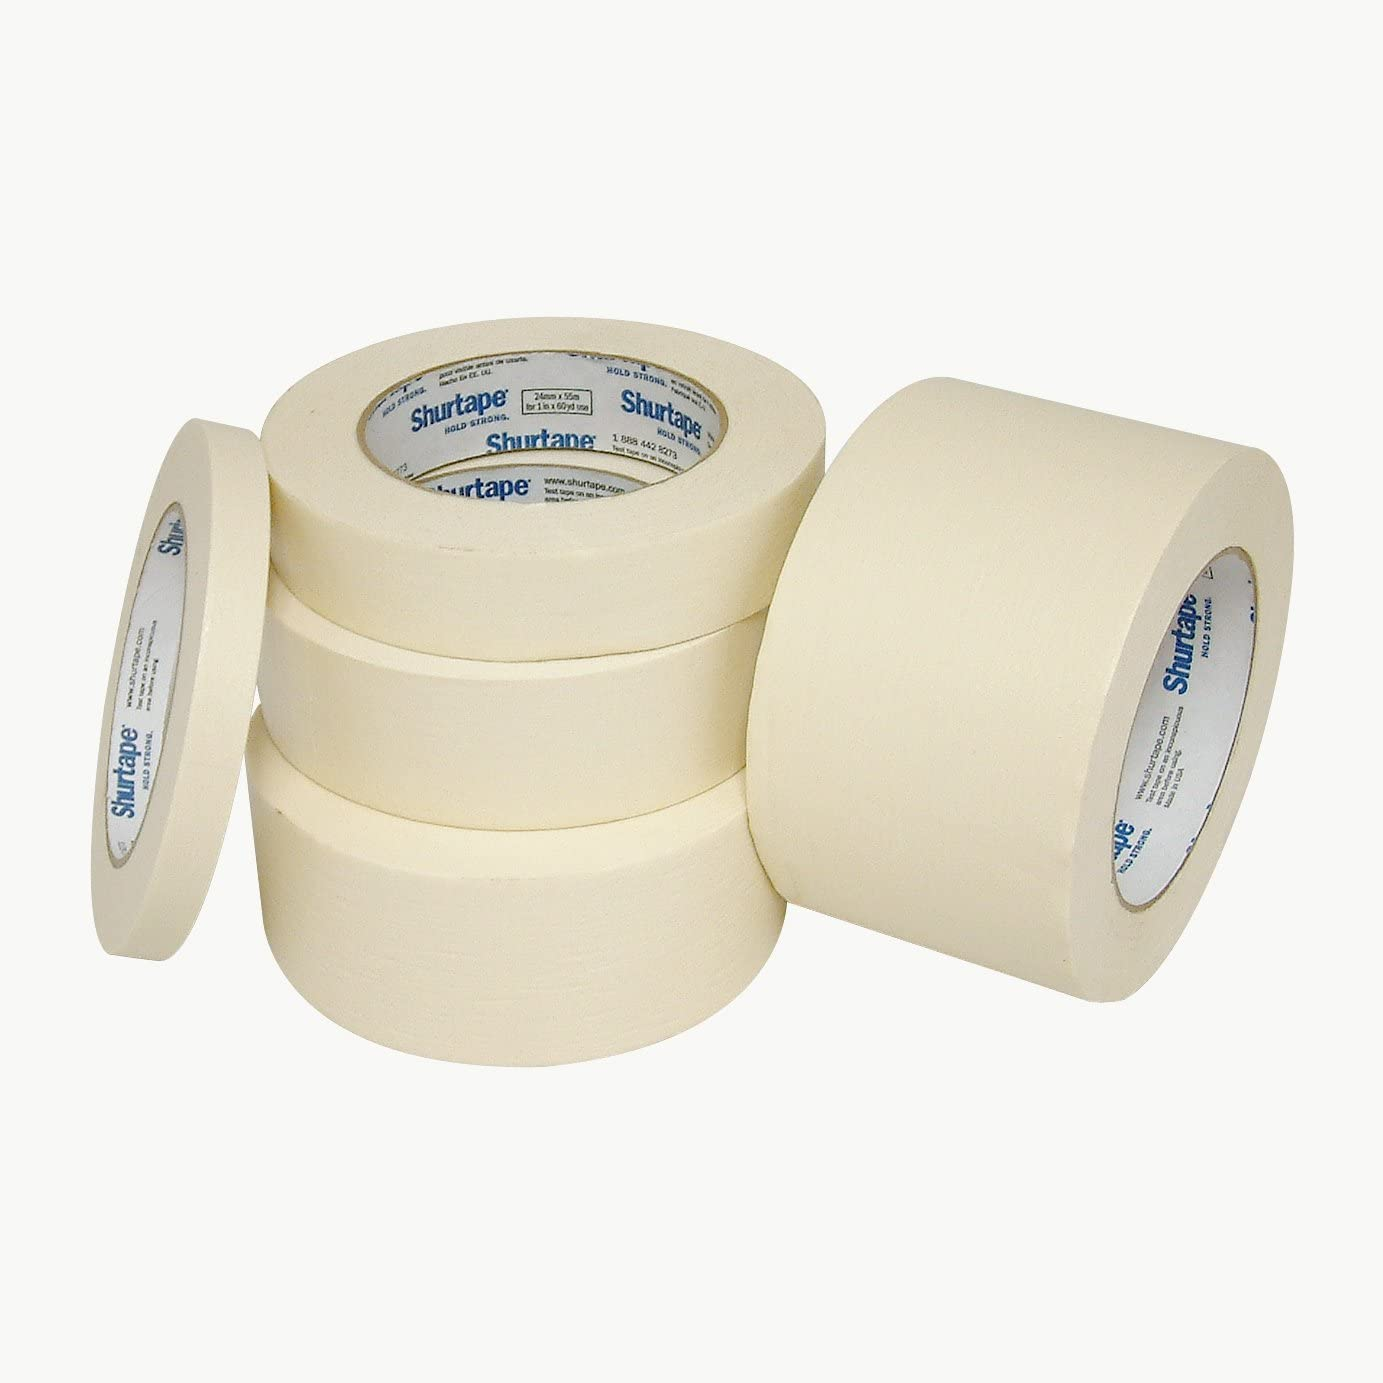 "Shurtape Cp-83/Nat160 Cp-83 Utility Grade Masking Tape: 1"" X 60 Yd, Natural"